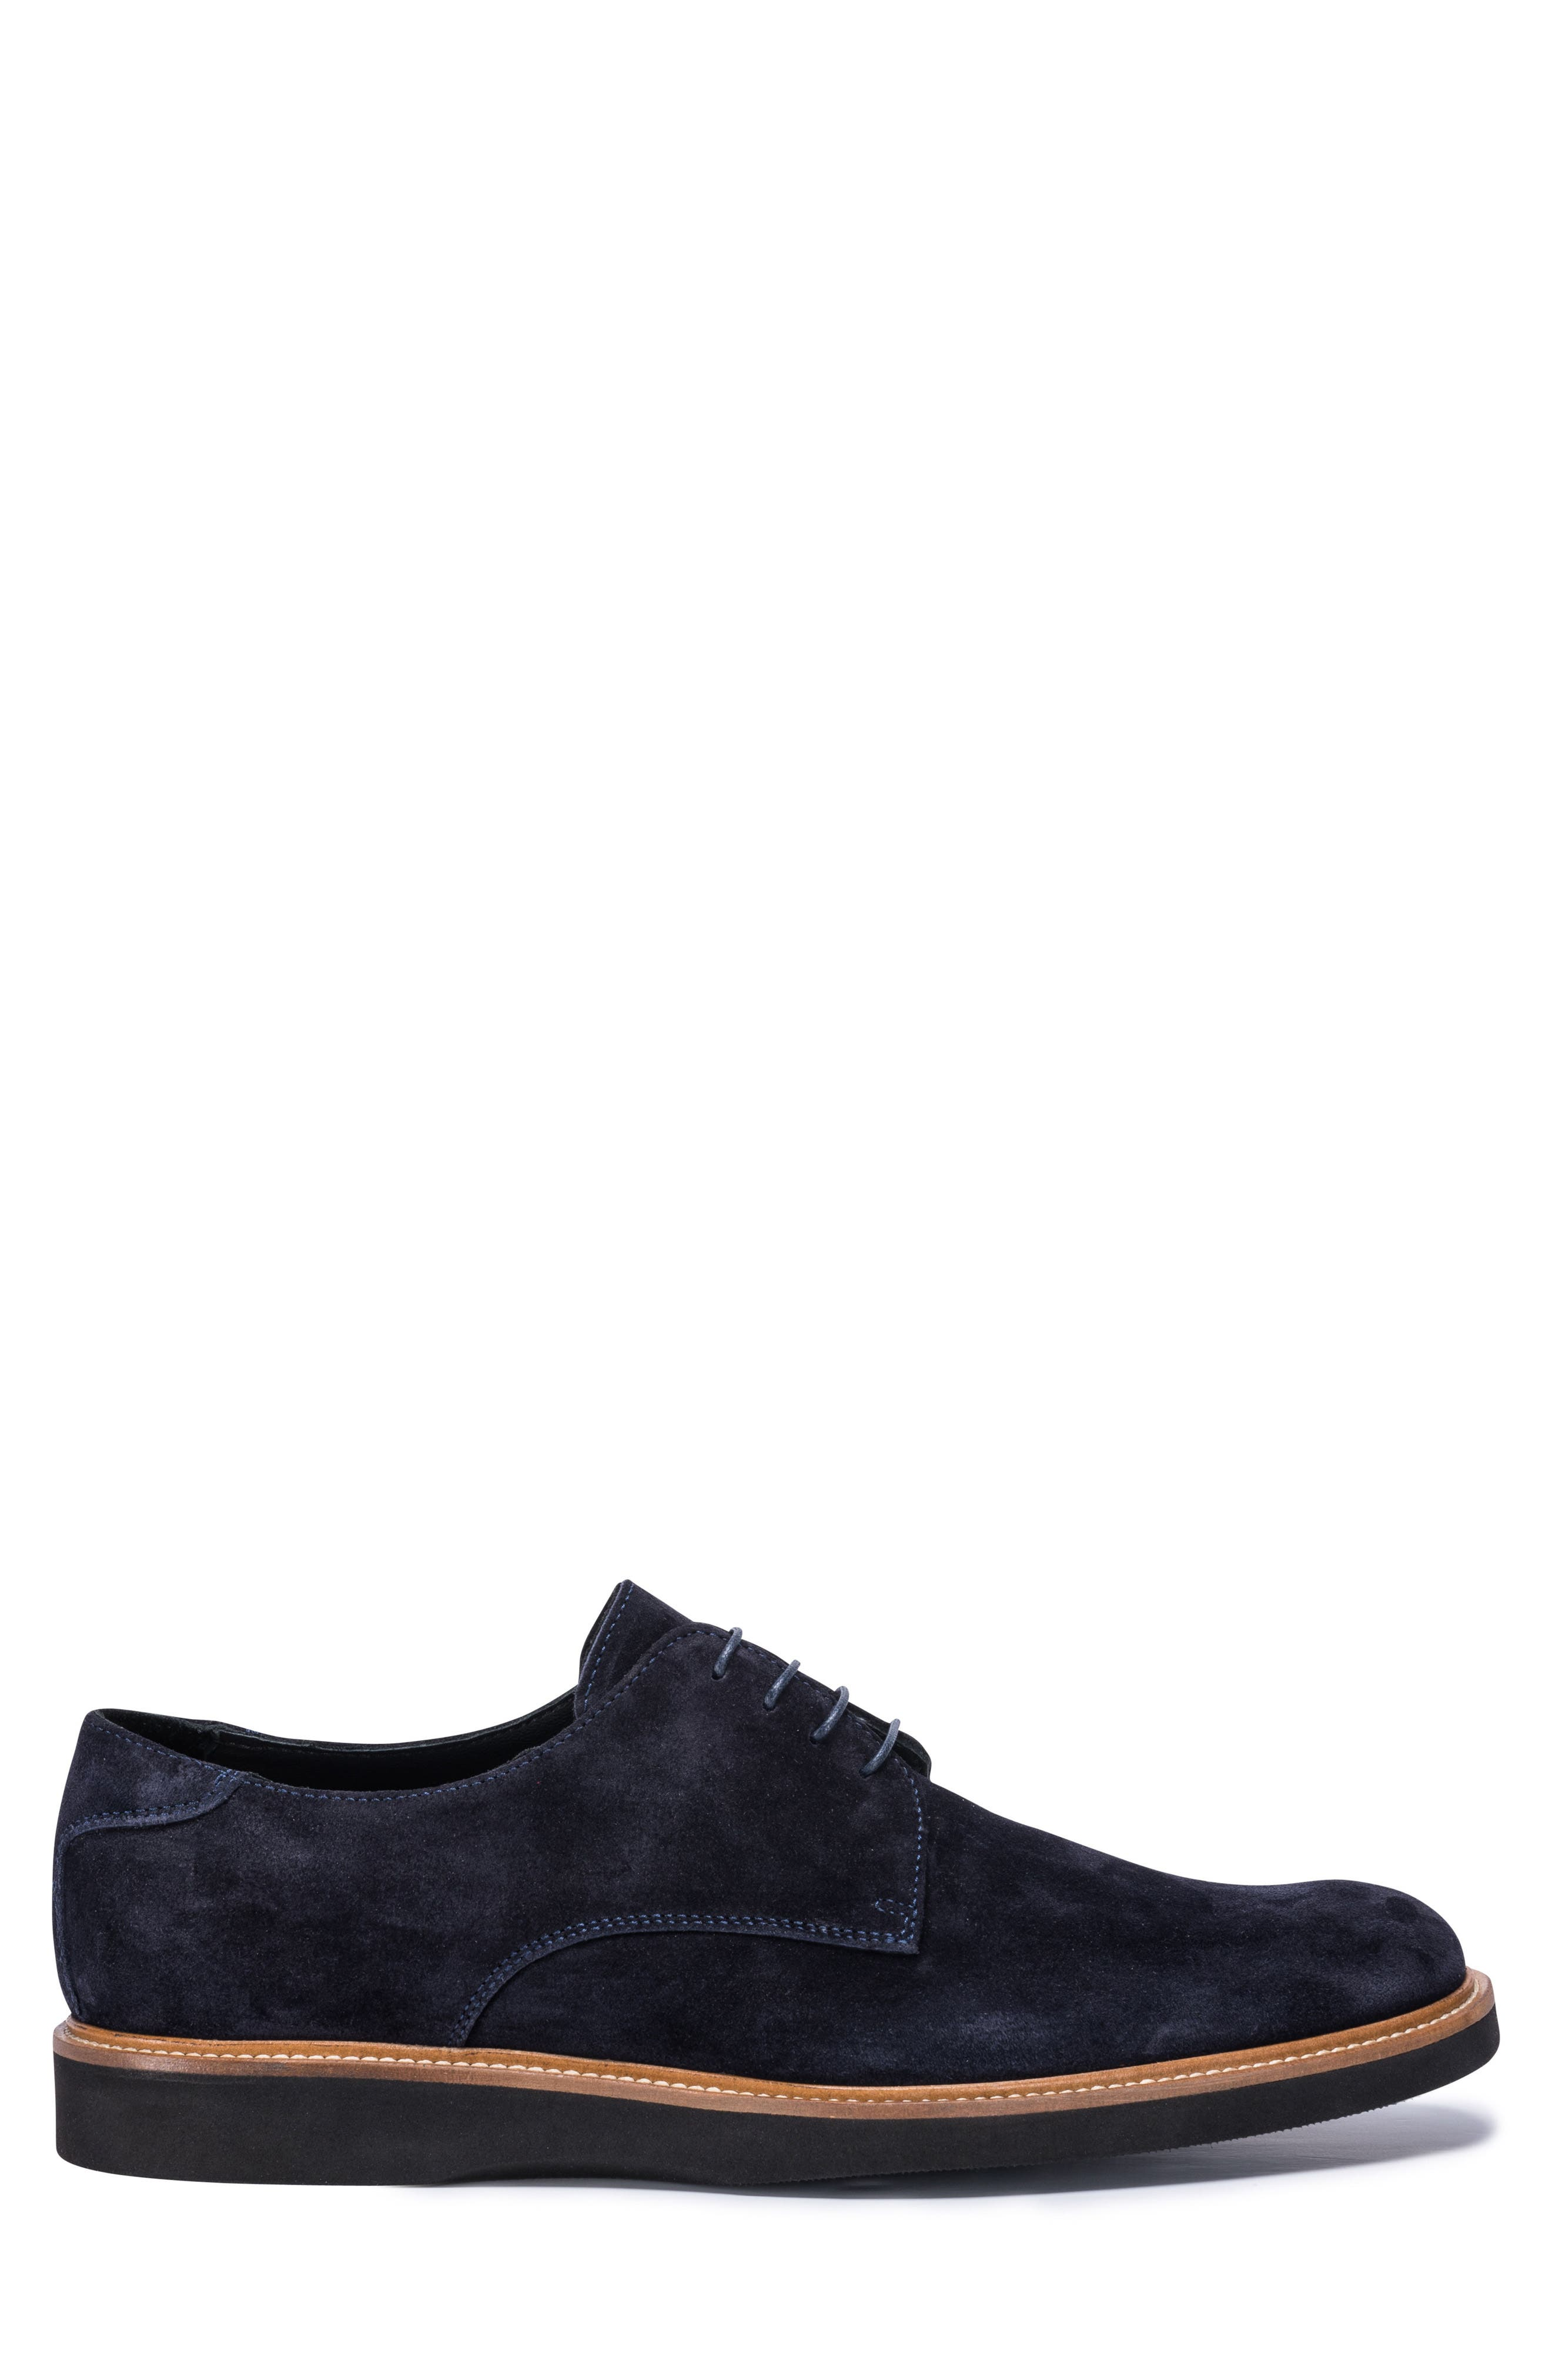 Siena Plain Toe Derby,                             Alternate thumbnail 3, color,                             Blue Suede